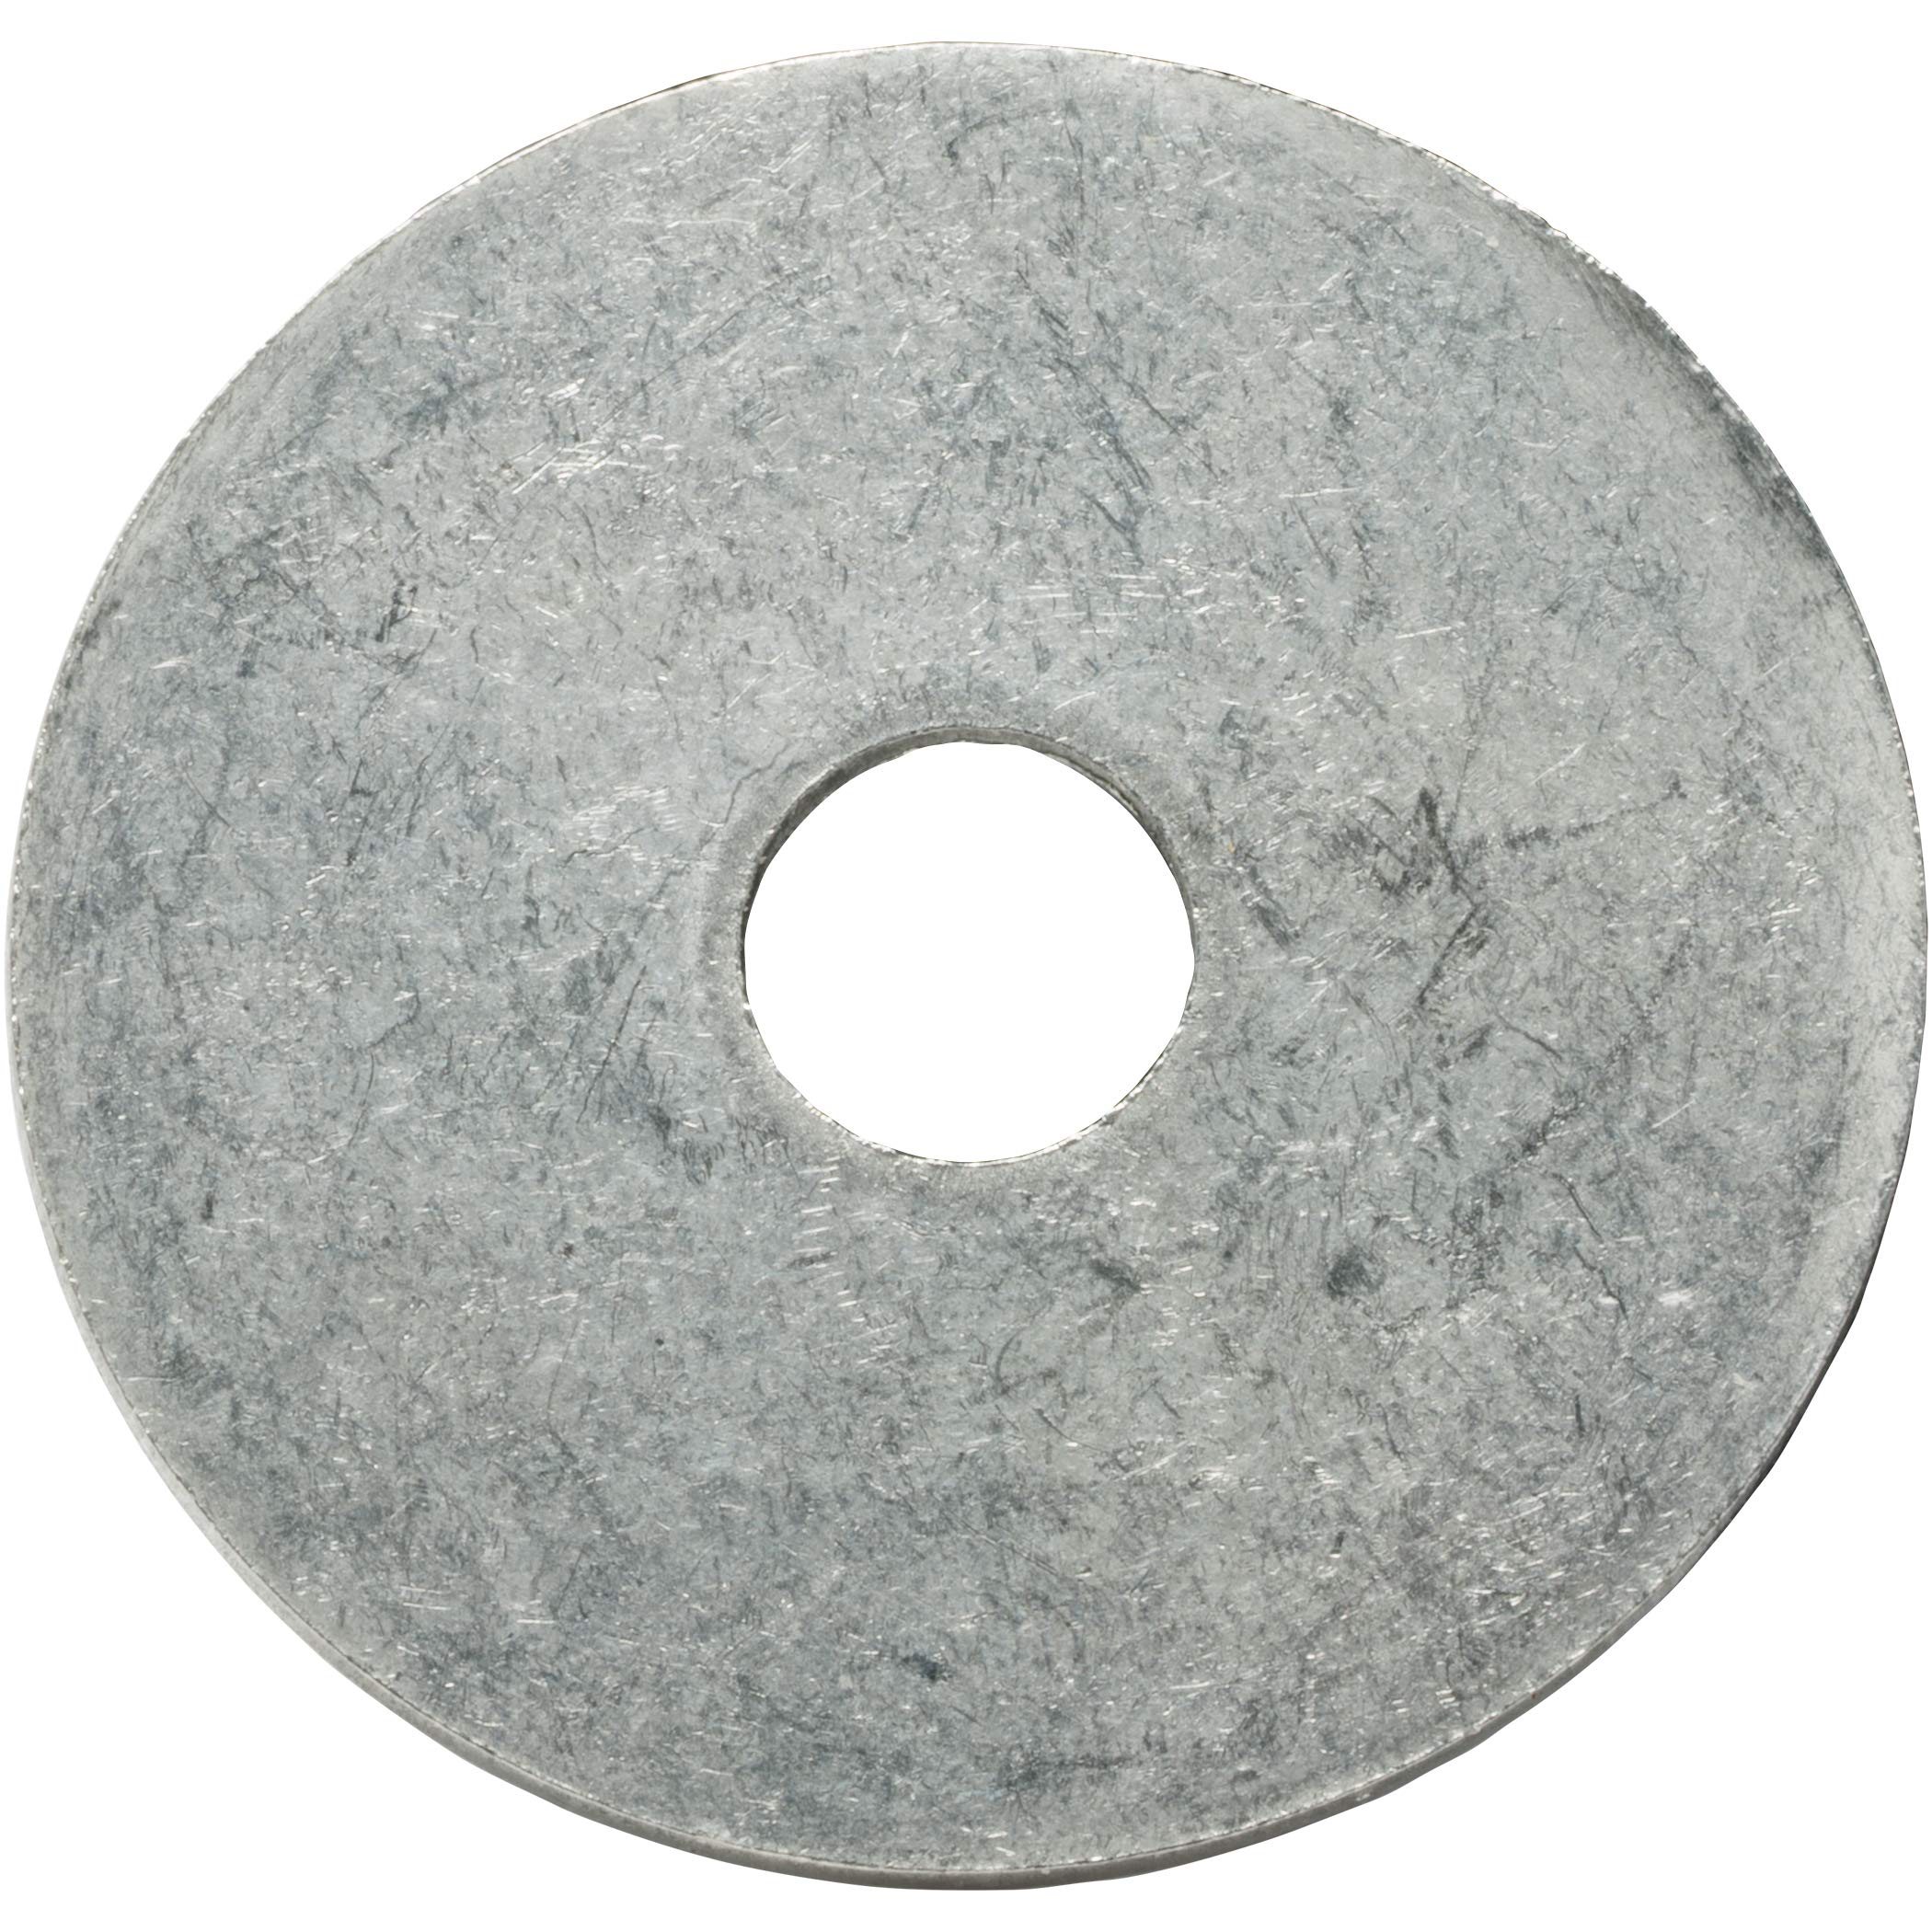 1/4 x 2'' Fender Washers, Large Diameter, Stainless Steel 18-8, Plain Finish, Quantity 500 by Fastenere